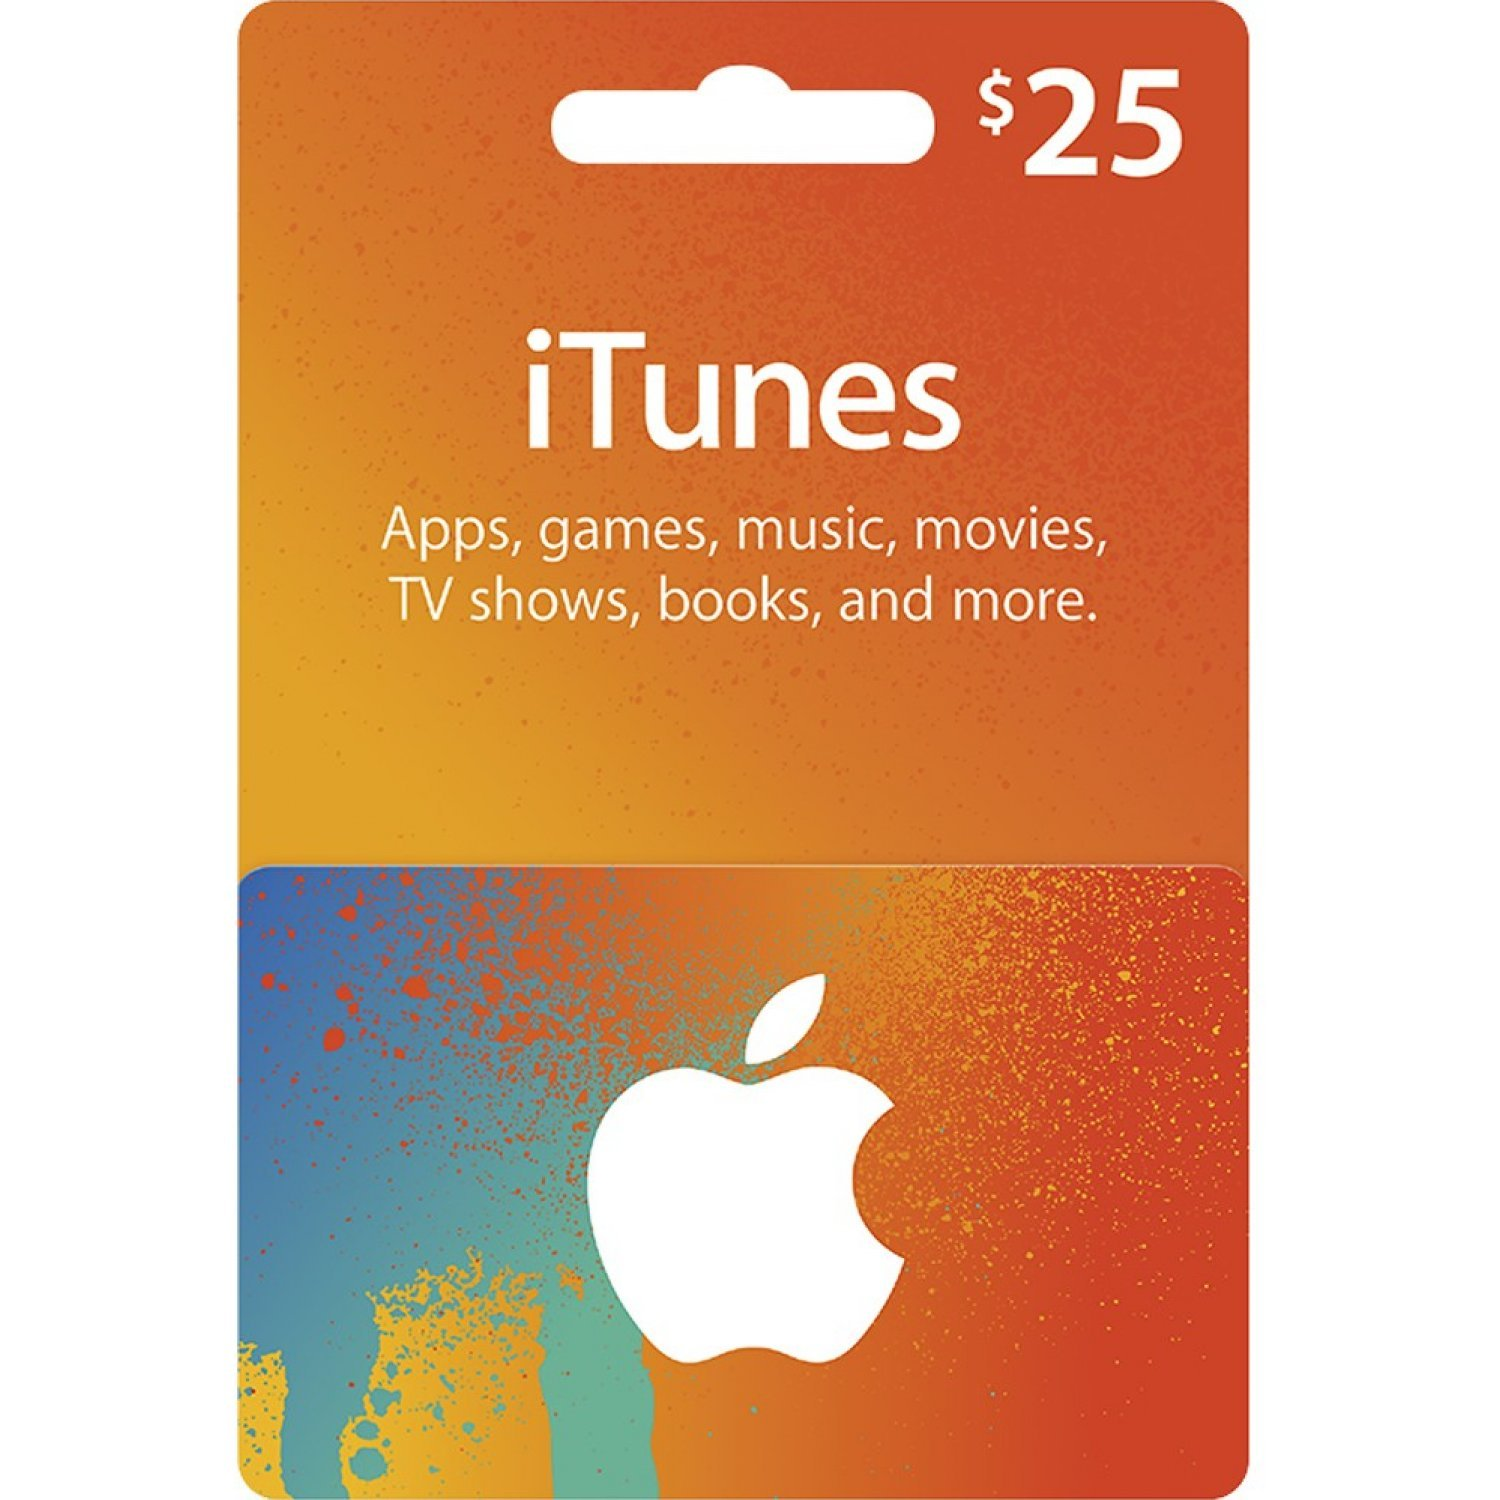 iTunes Card (USD 25 / for US accounts only)